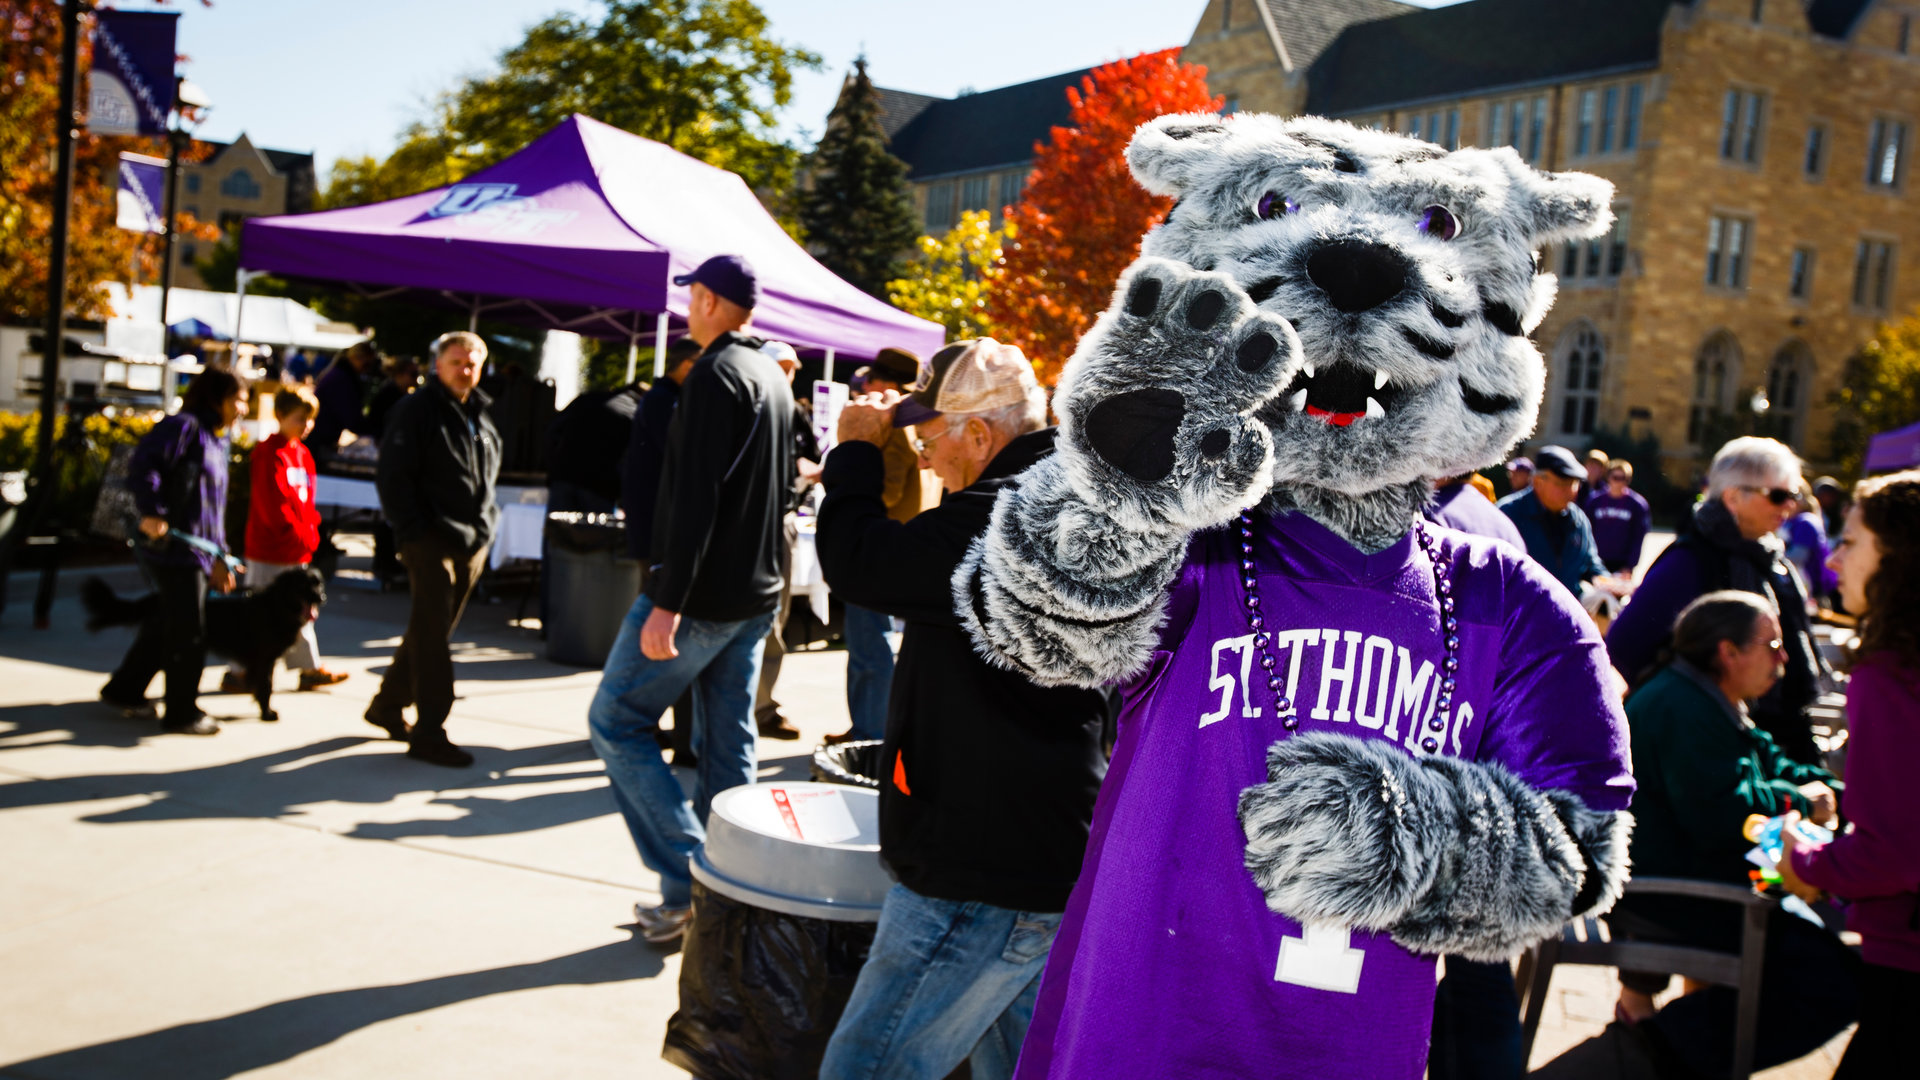 Tommie waves a the camera during an event on campus